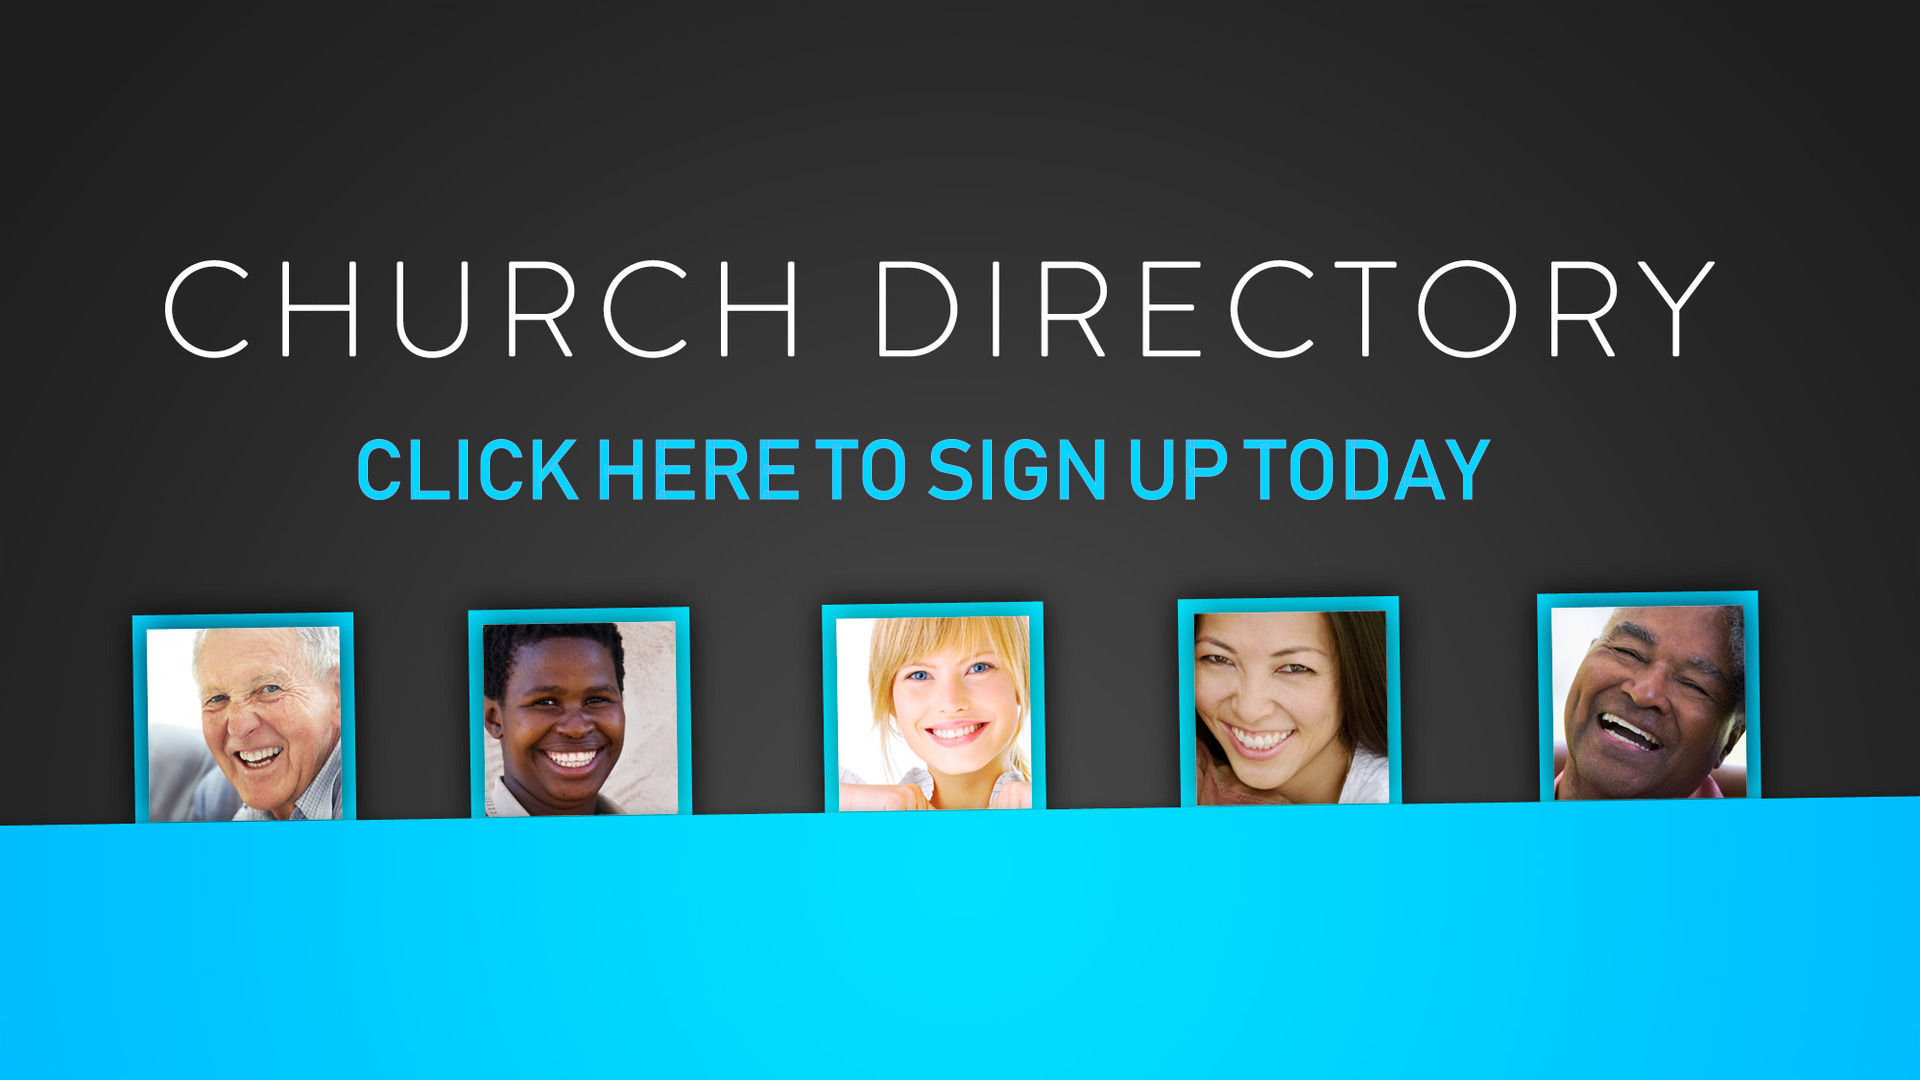 3church_directory_signup_slide